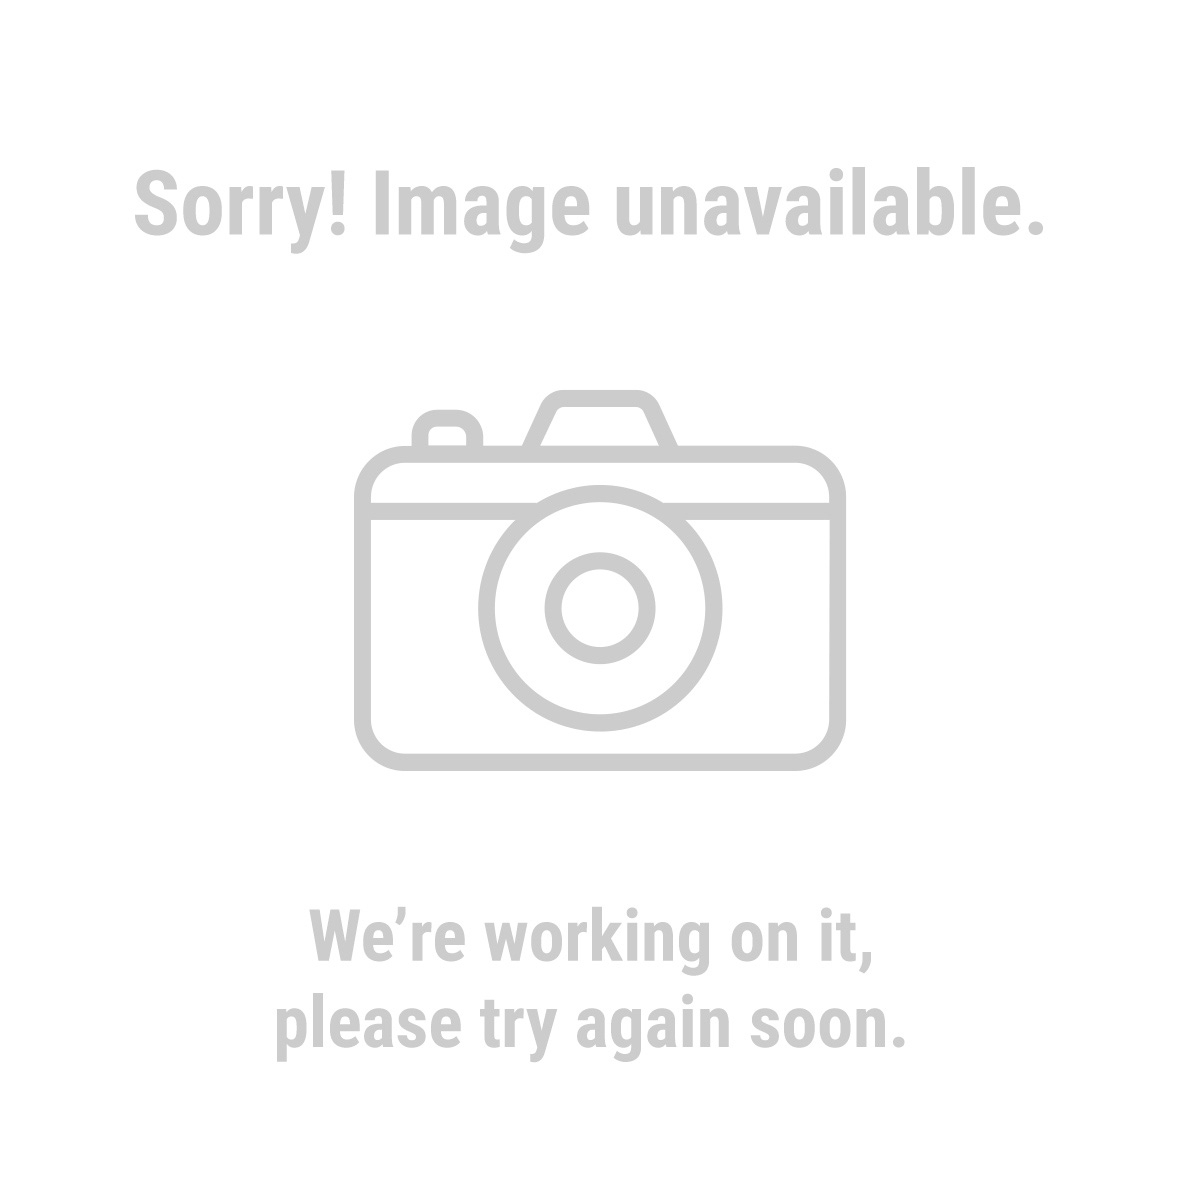 Storehouse 65471 Pegboard Multiple Tool Holder